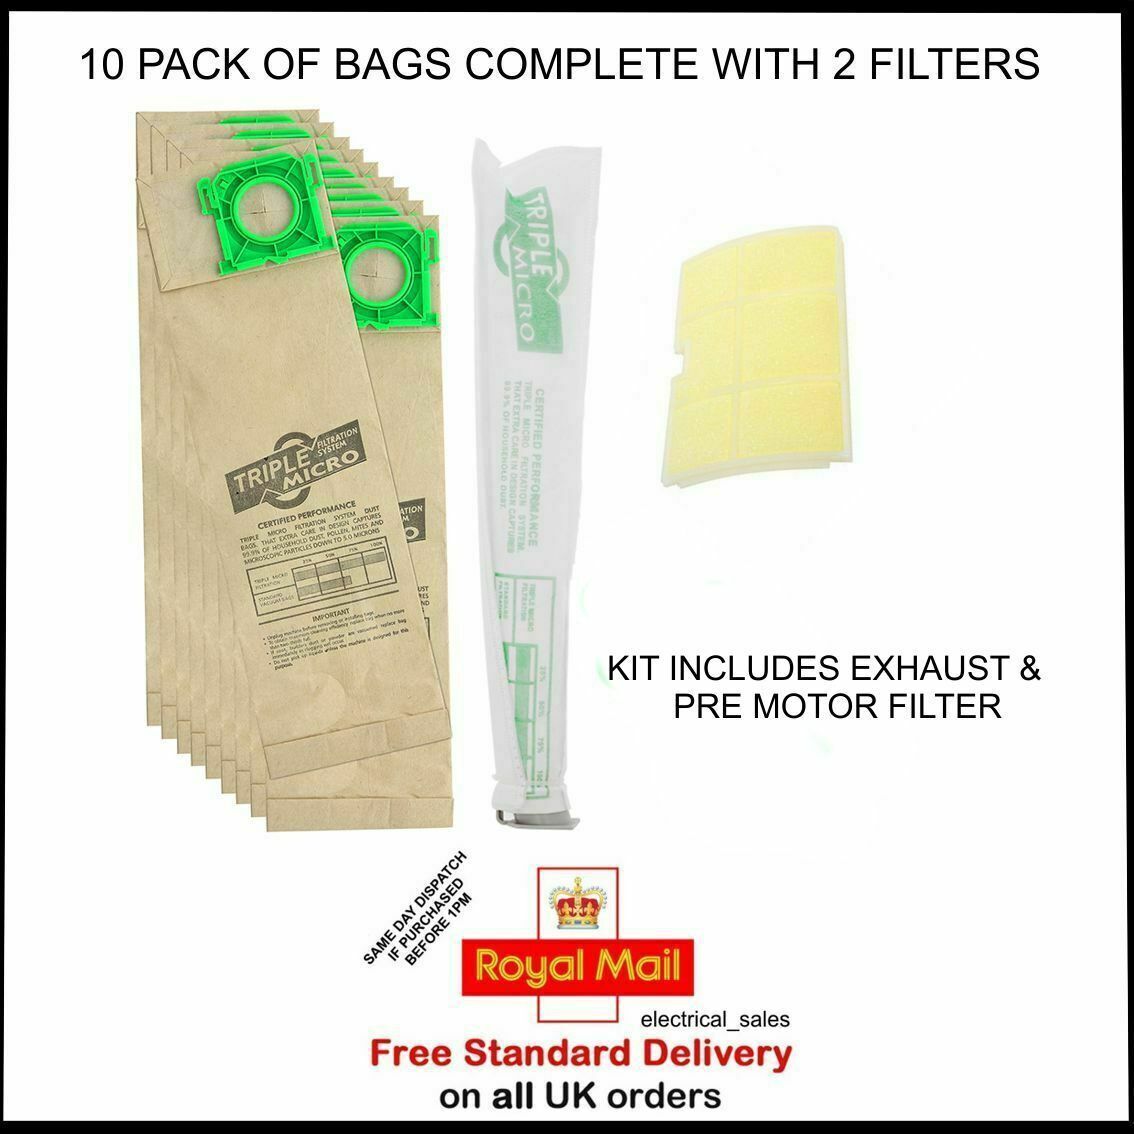 FITS SEBO X1 X4 X5 VACUUM CLEANER DUST BAGS x 10 /& MOTOR FILTER